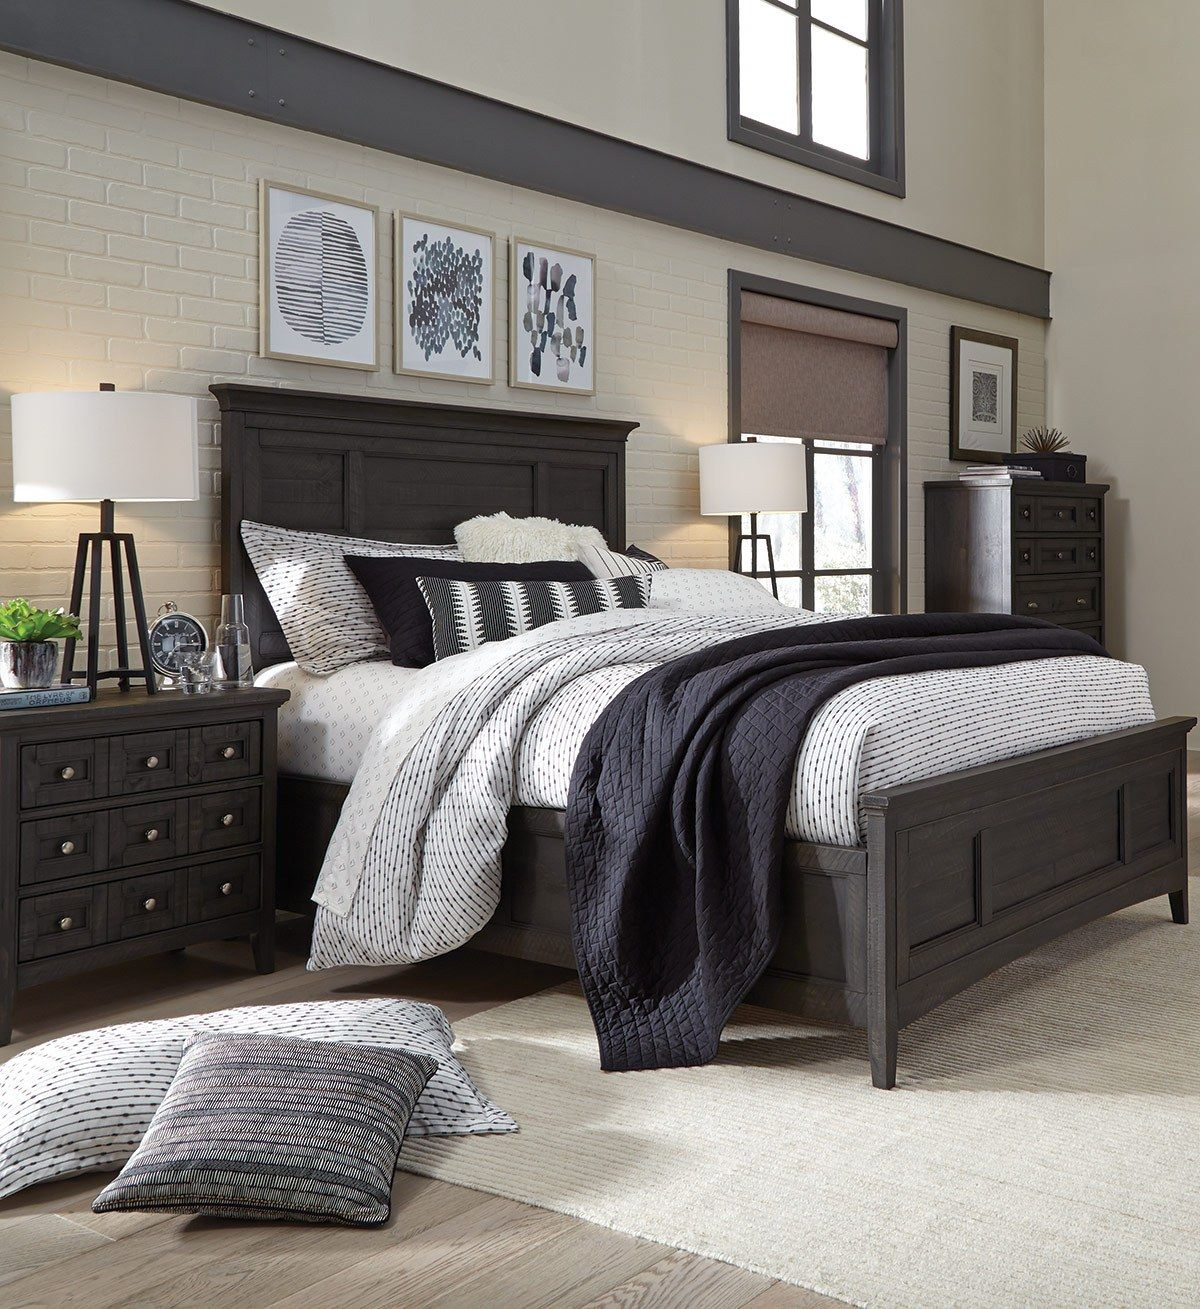 7 Reasons To Decorate with Black and White Black bedroom